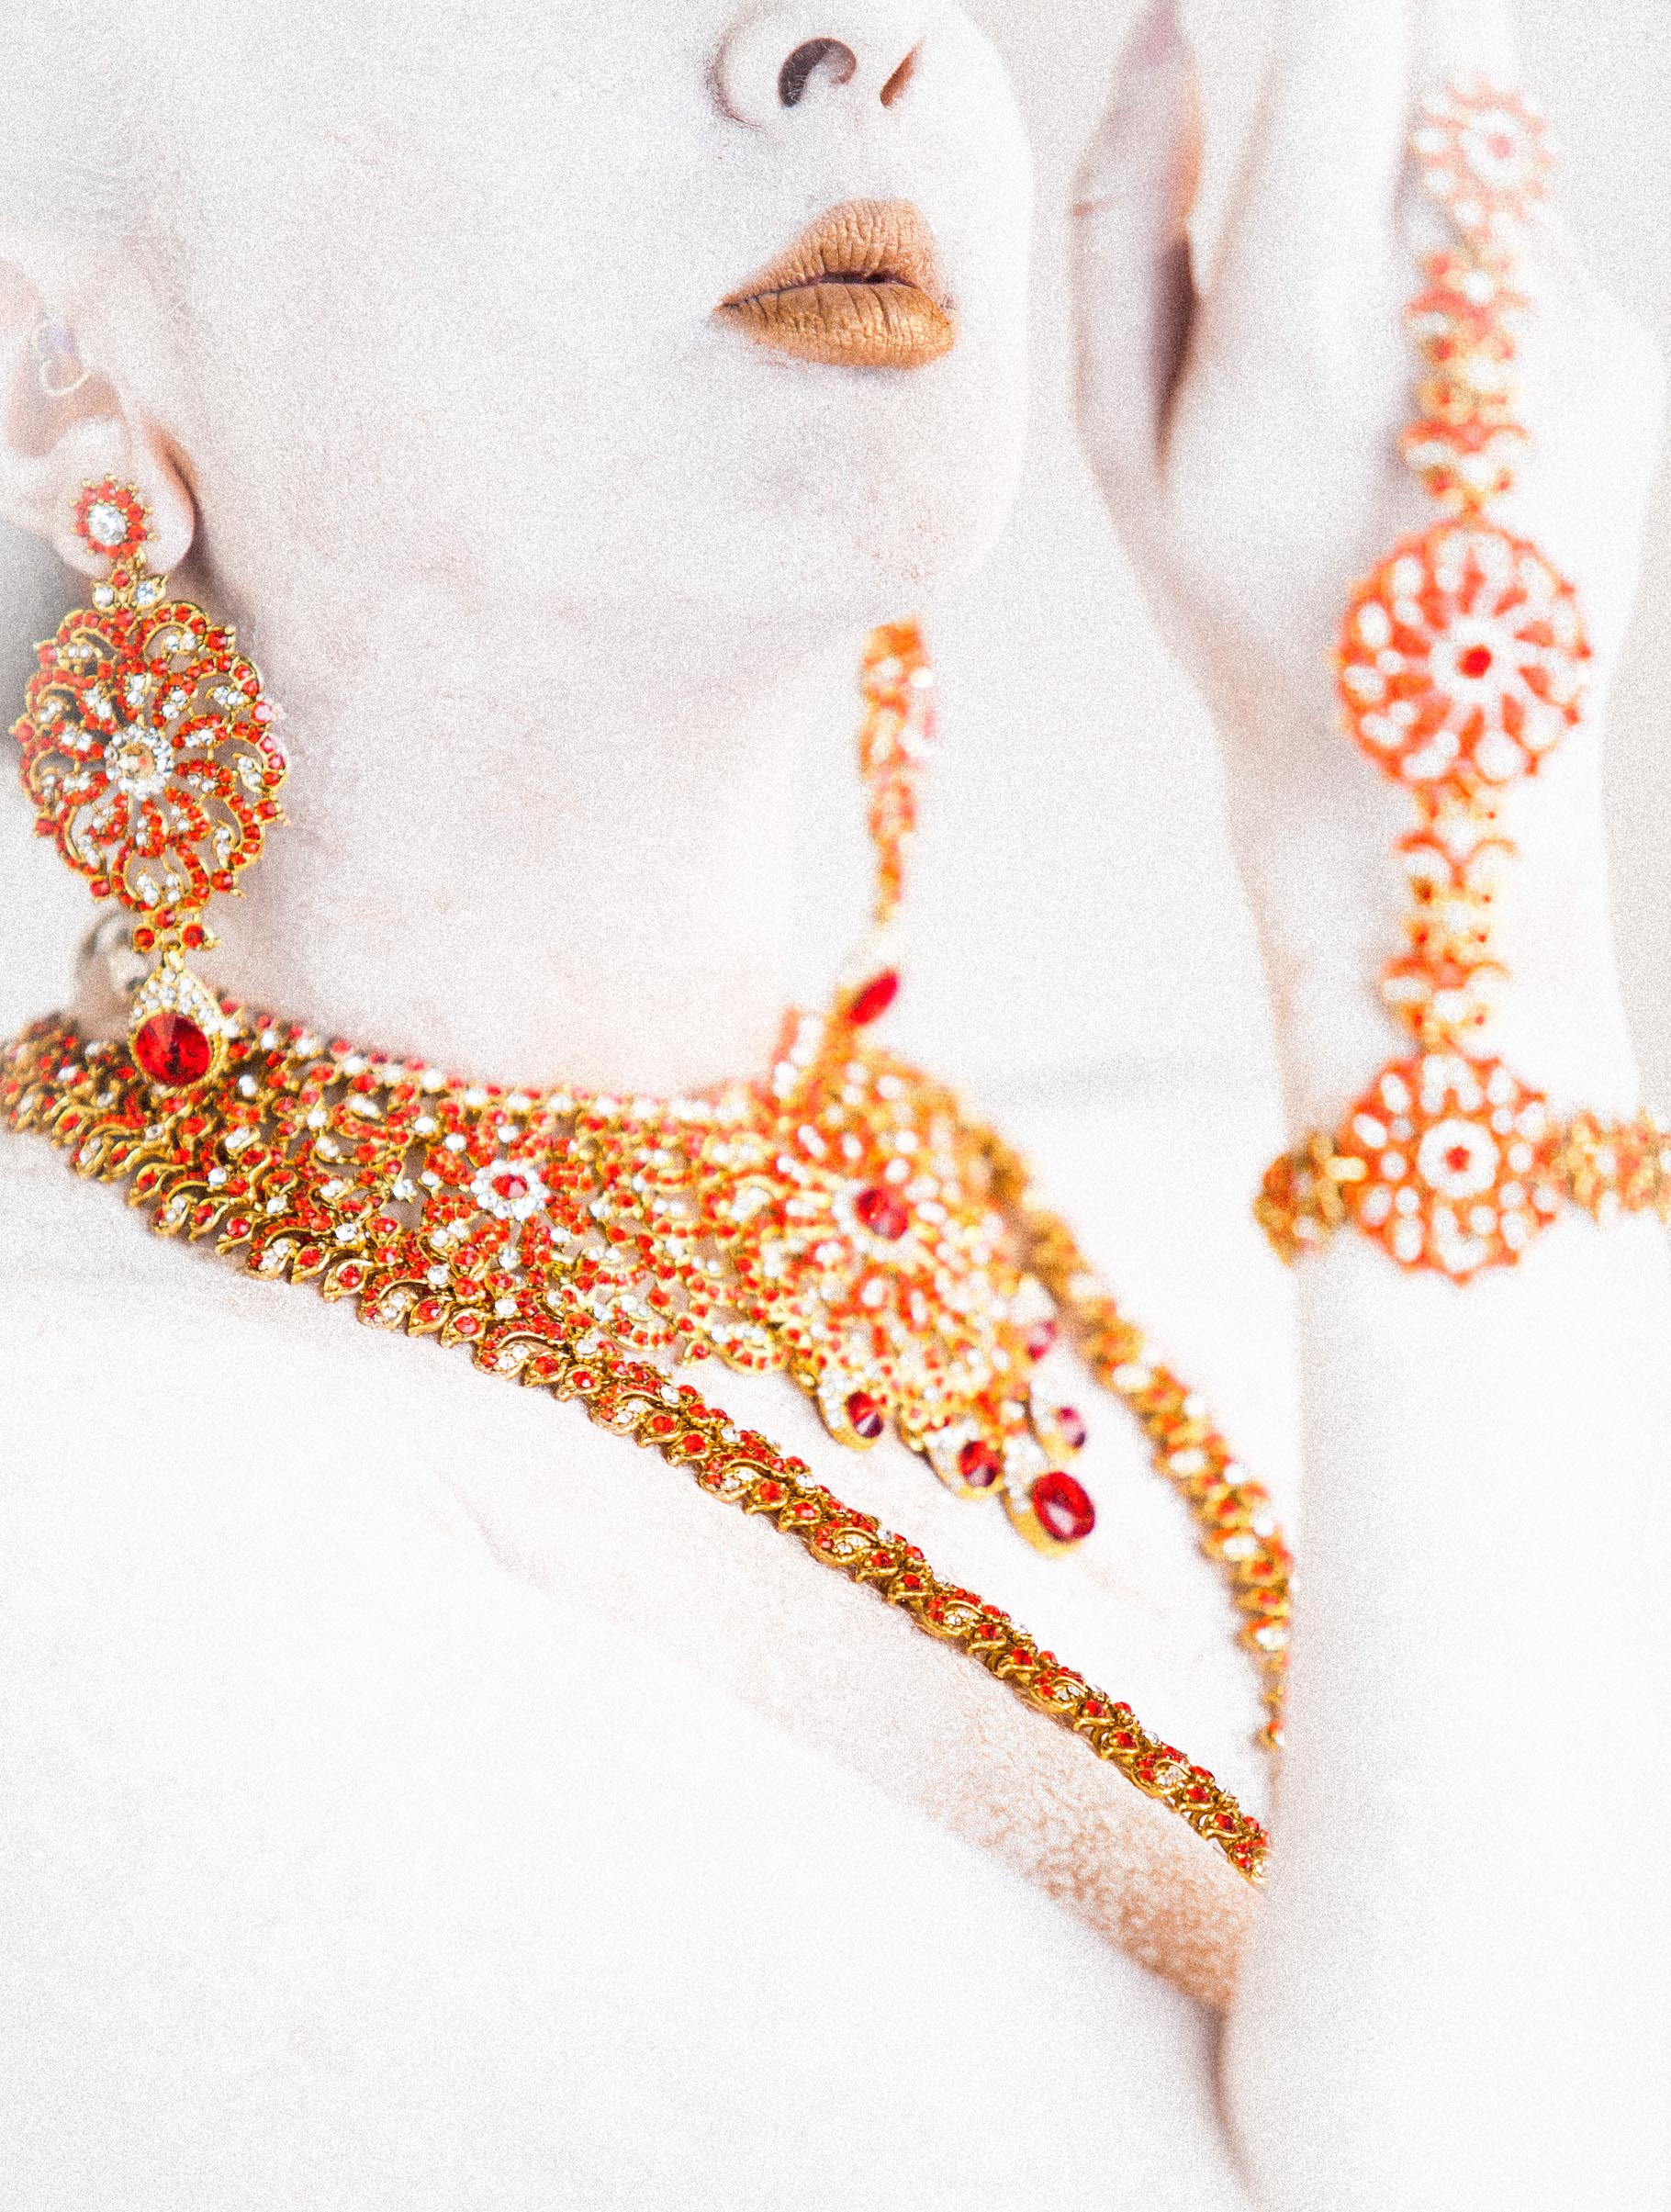 The beauty of Asian Jewellery